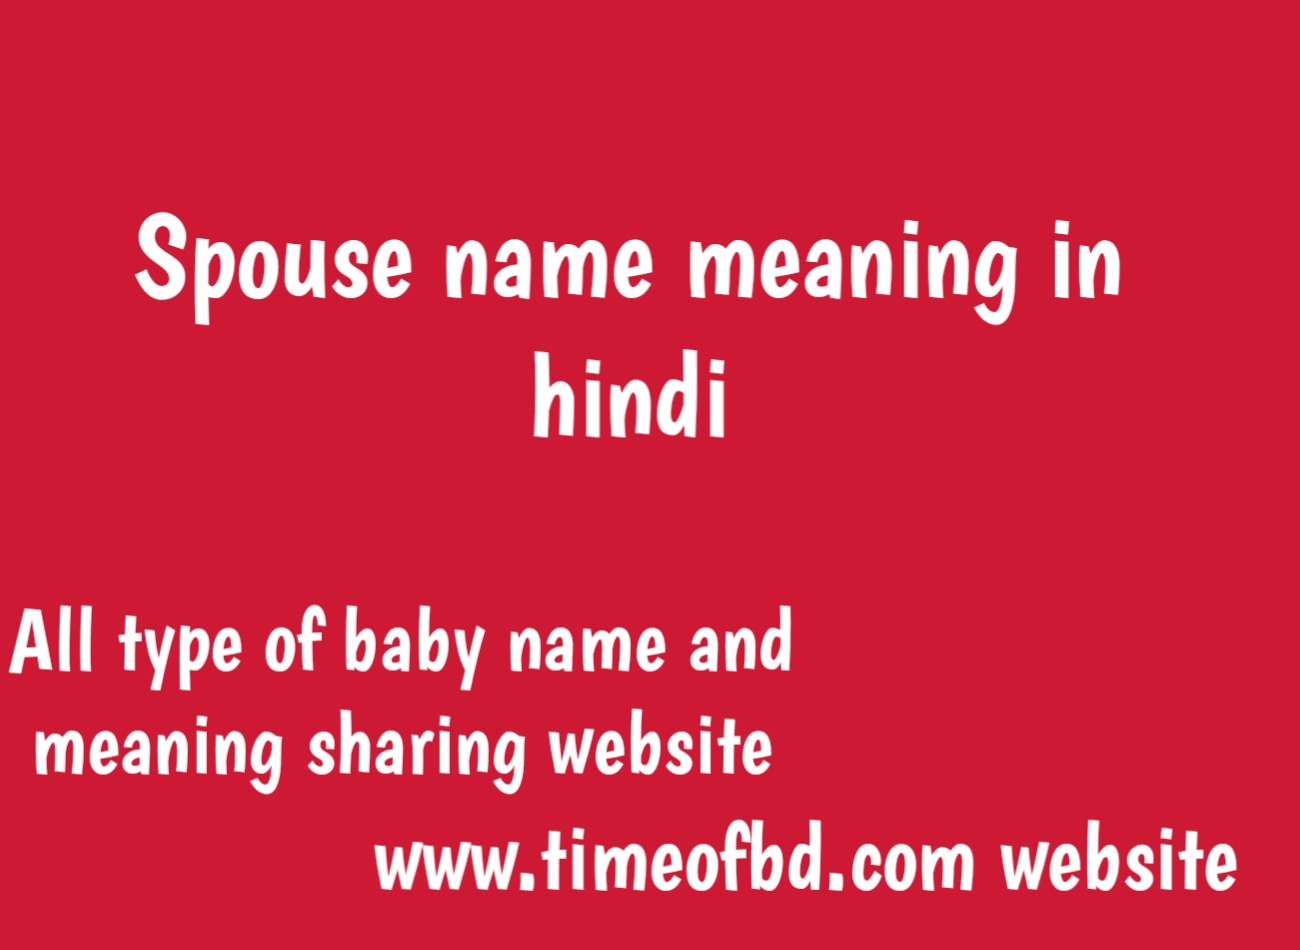 spouse name meaning in hindi,spouse ka meaning, spouse meaning in hindi dictionary, meaning of spouse in hindi